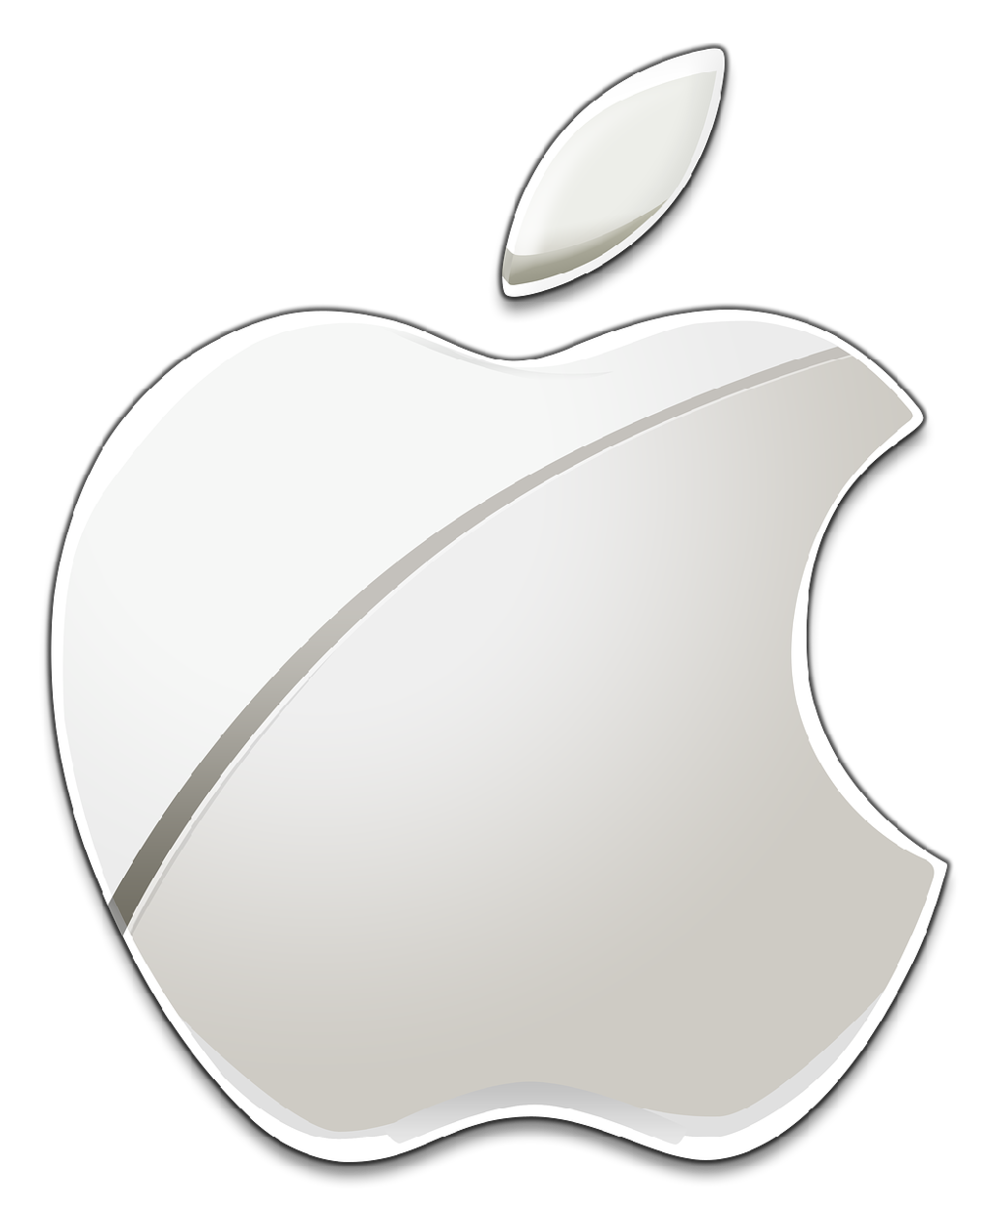 official-apple-logo-png.png